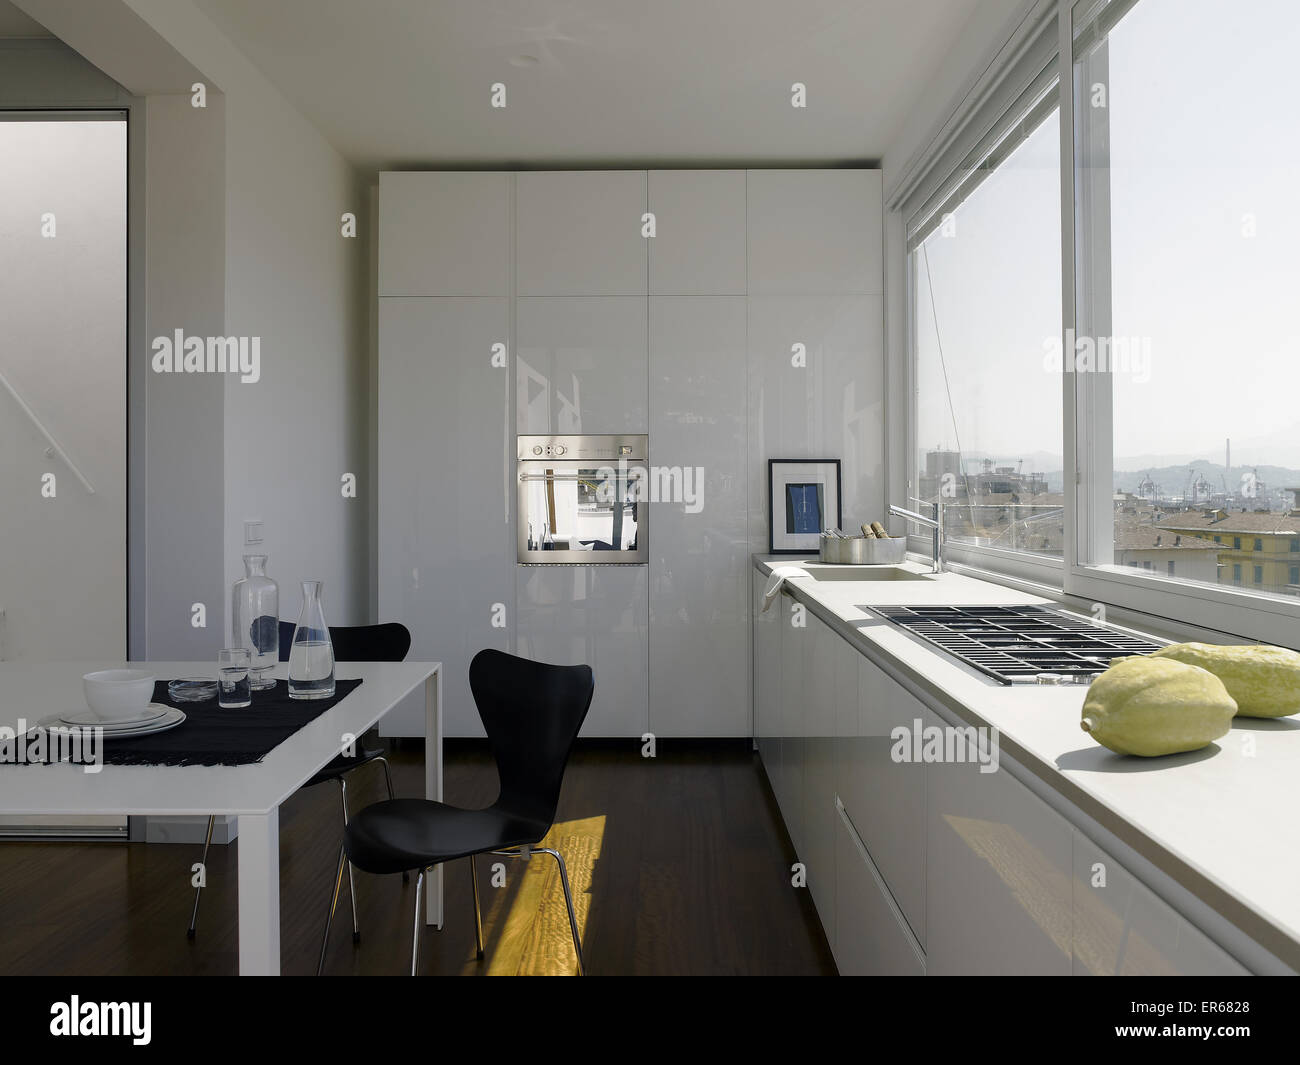 Interior Of A Contemporary Kitchen In An Elegant Loft With A